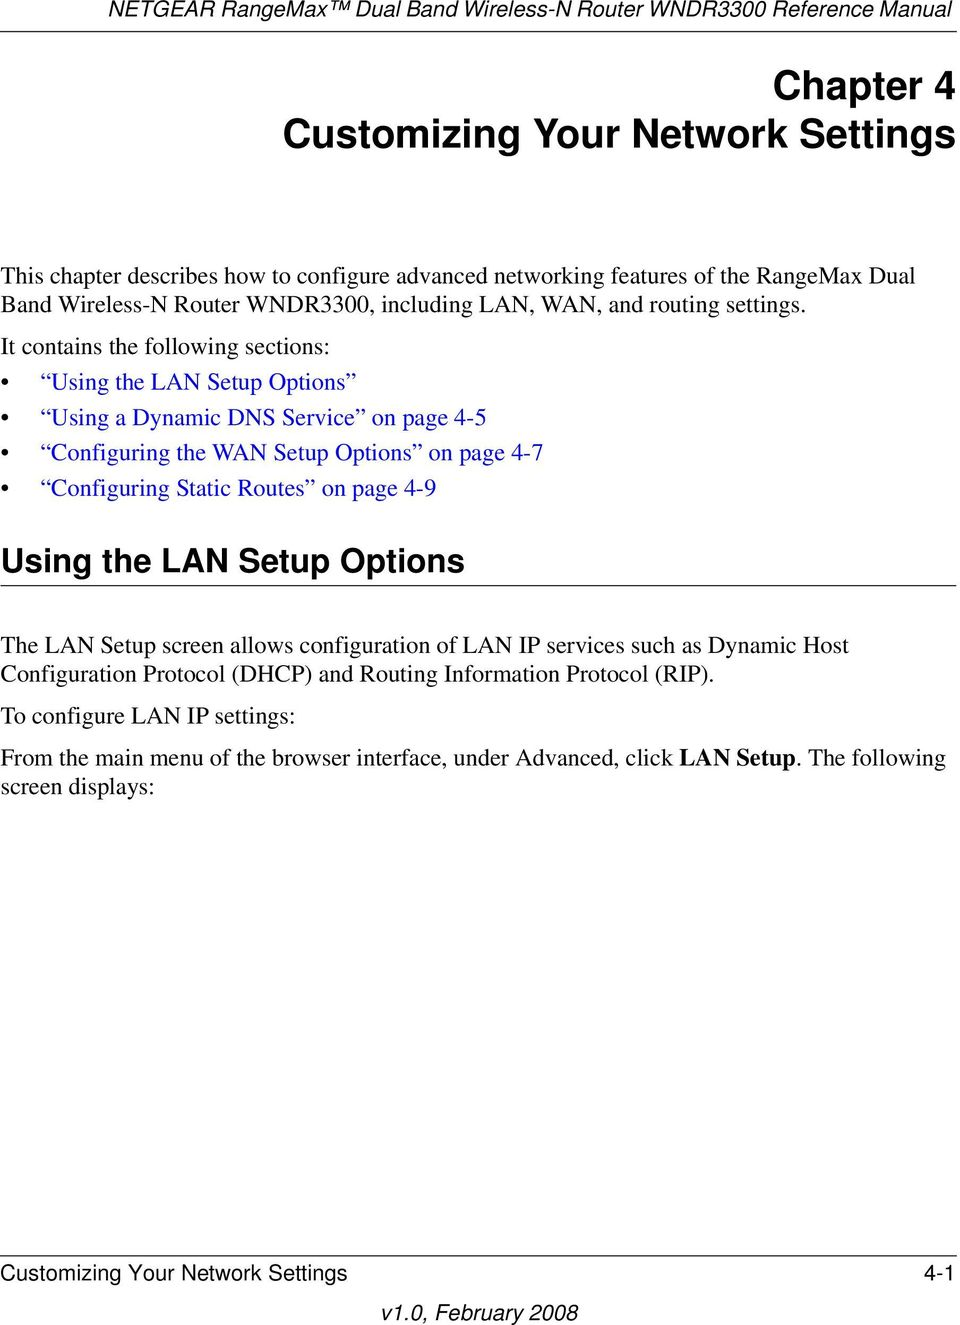 It contains the following sections: Using the LAN Setup Options Using a Dynamic DNS Service on page 4-5 Configuring the WAN Setup Options on page 4-7 Configuring Static Routes on page 4-9